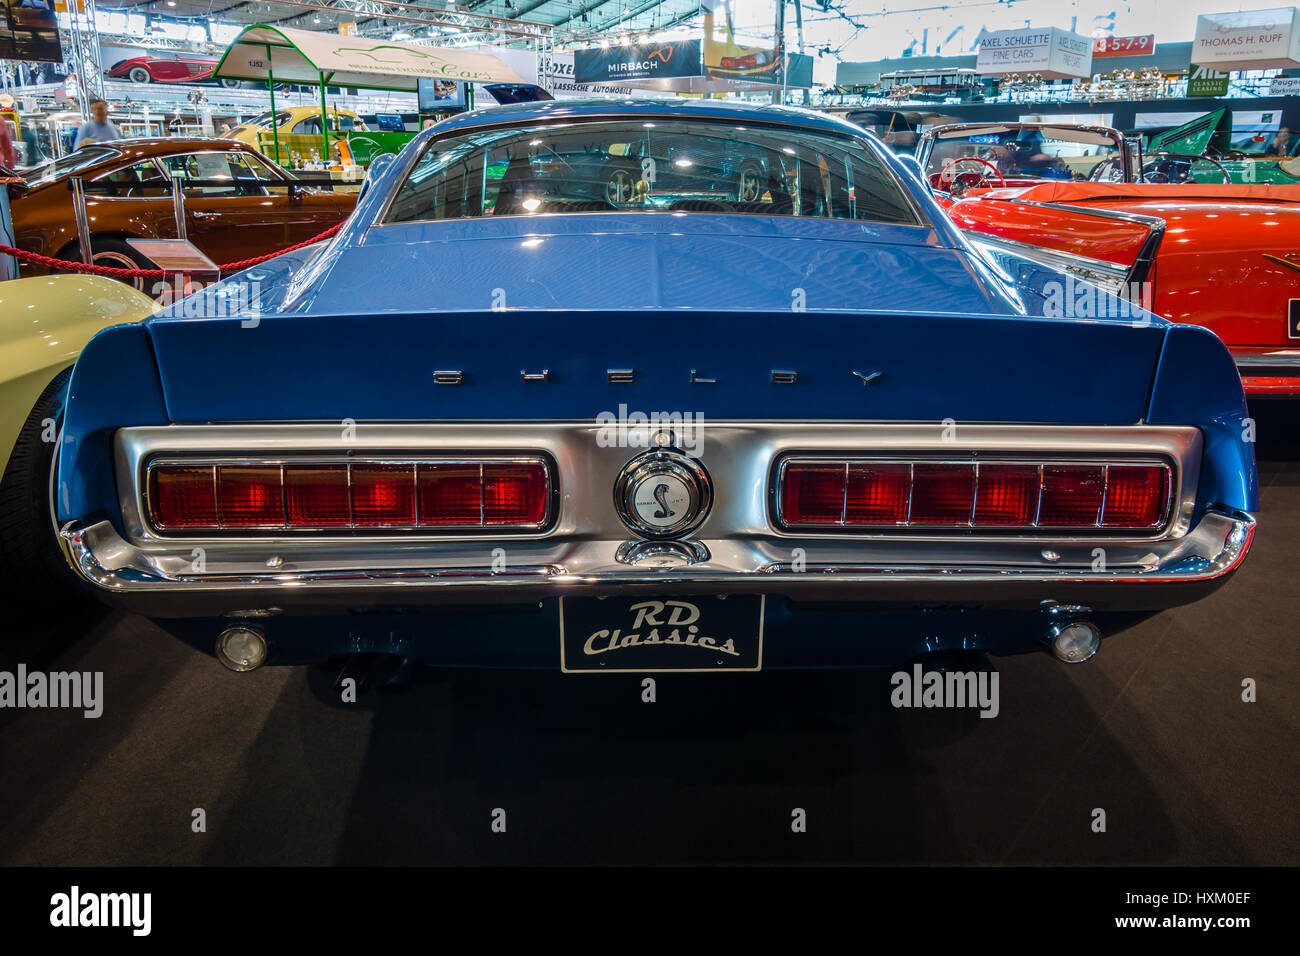 Muscle Car Ford Mustang Shelby Gt500kr 1968 Rear View Europe S